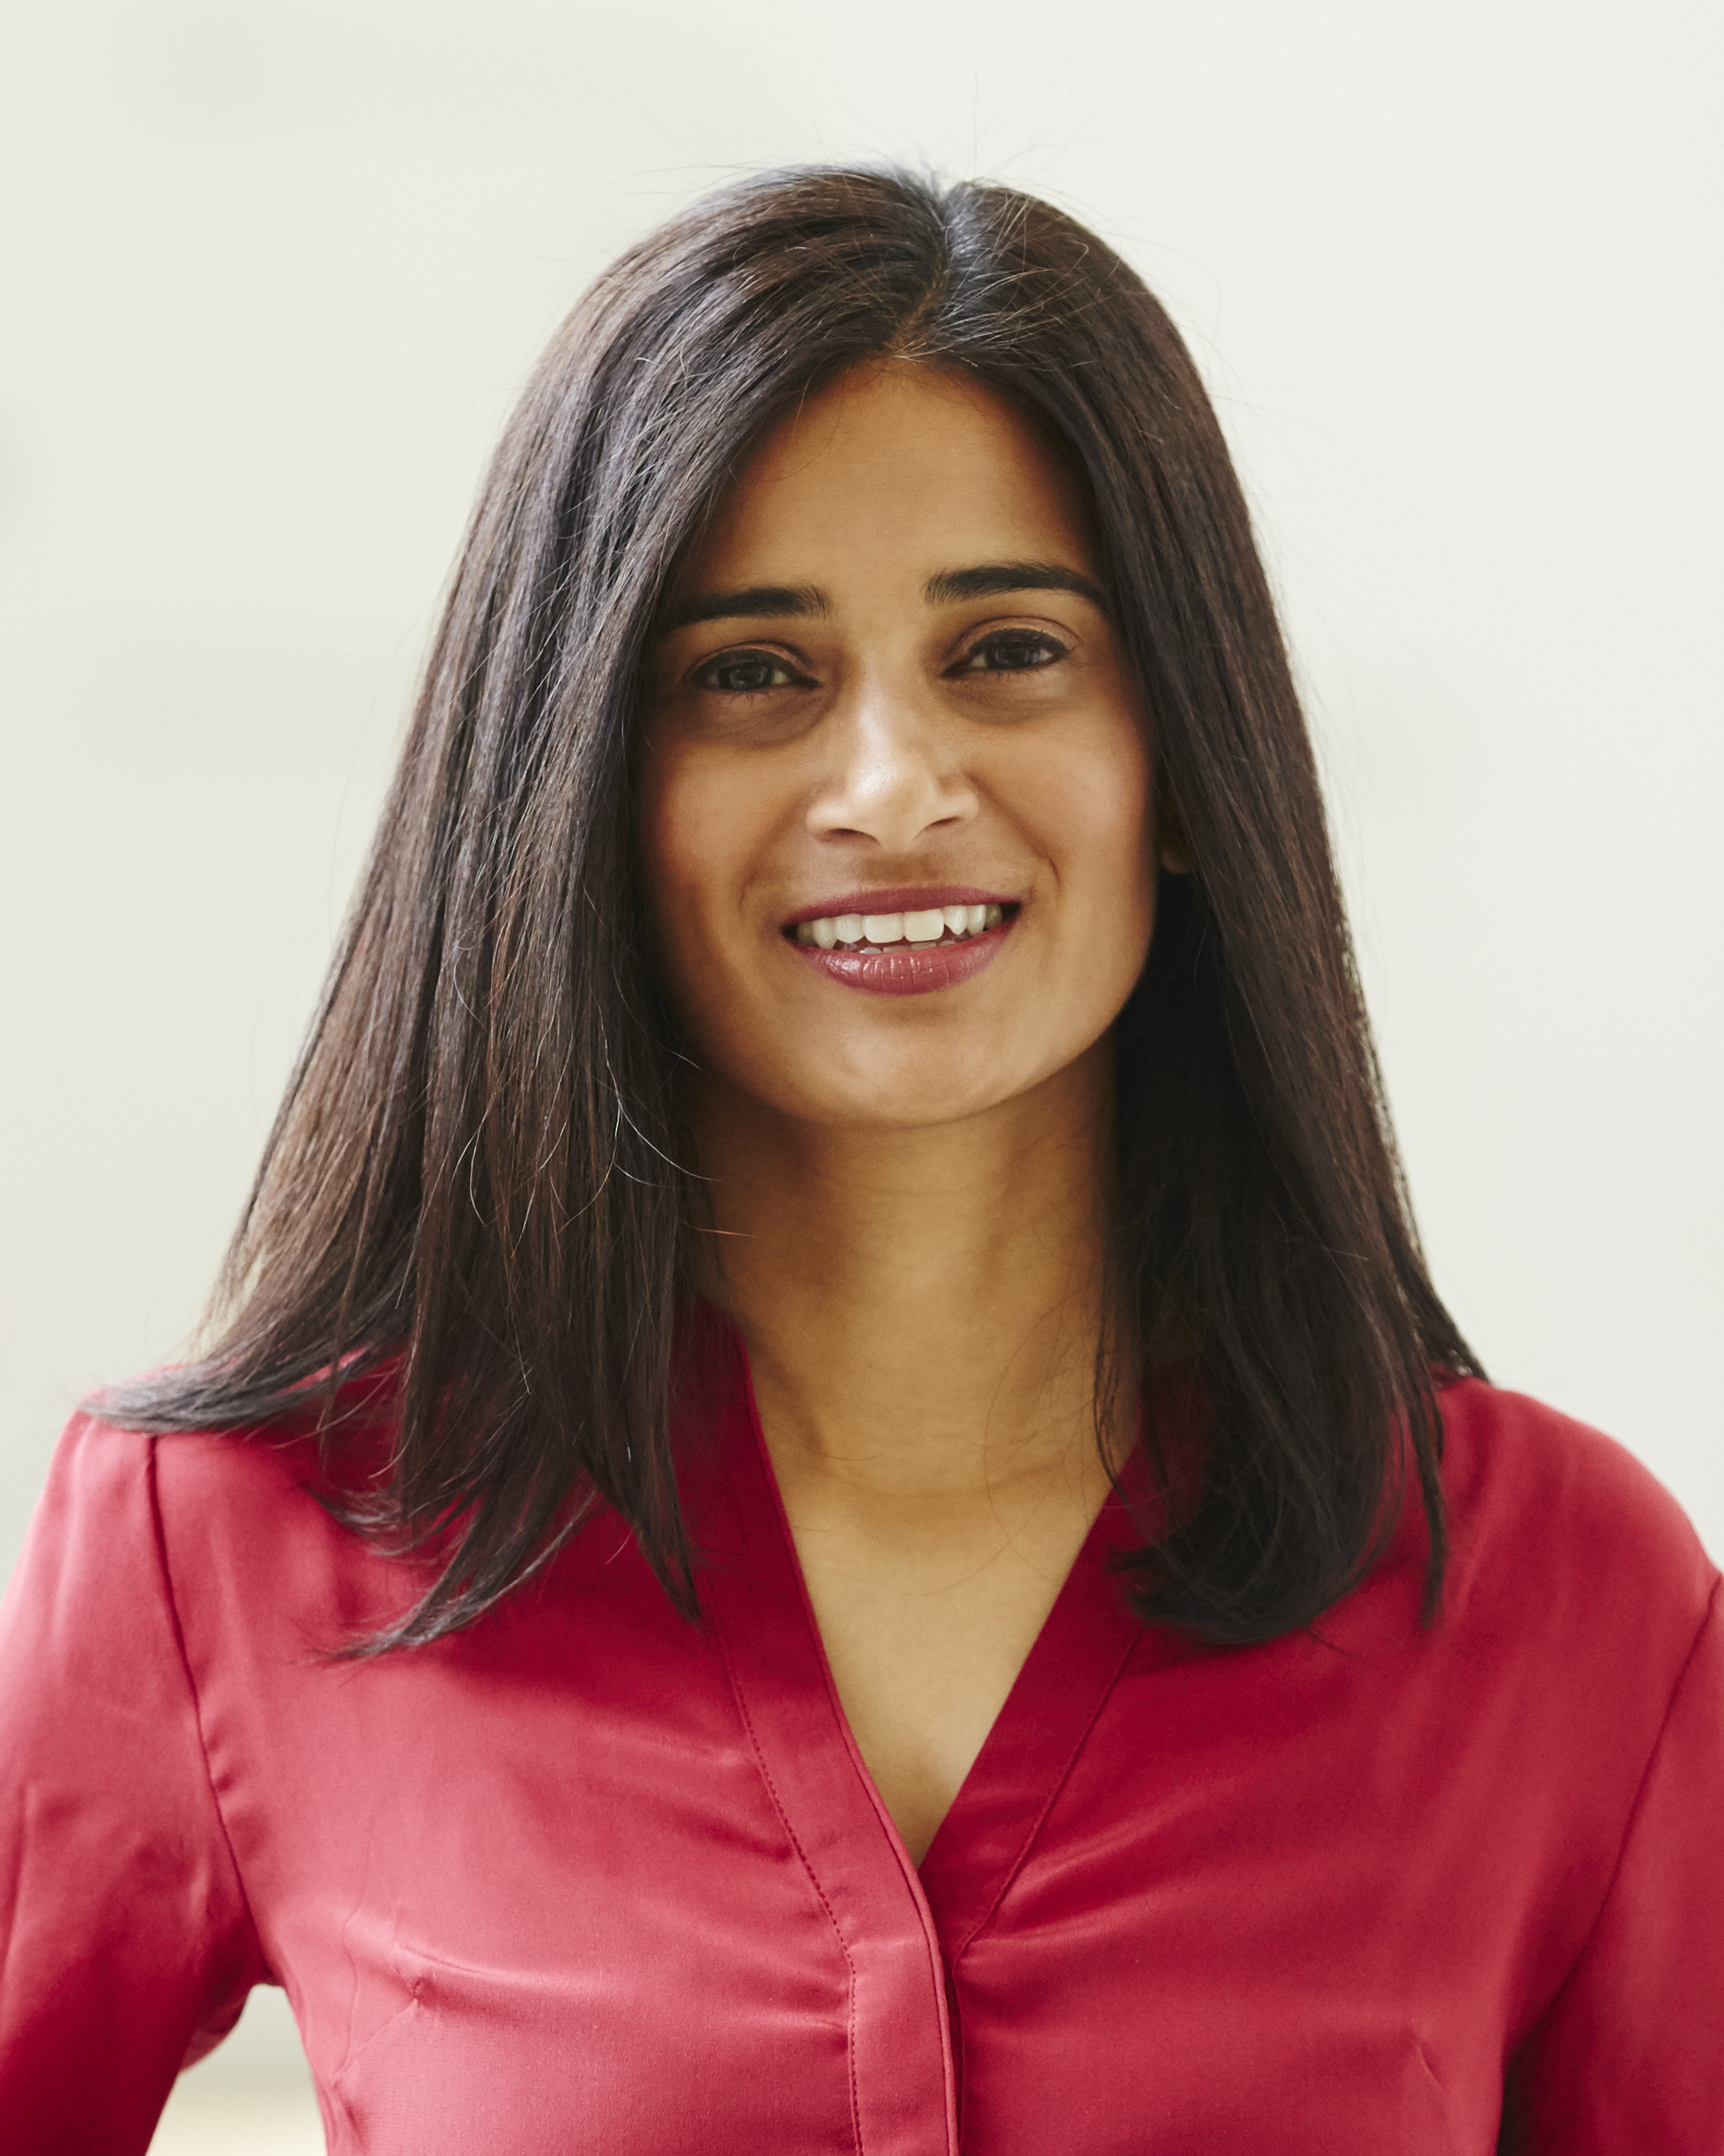 Customer Service In The Sharing Economy: Q&A With Airbnb's Varsha Rao